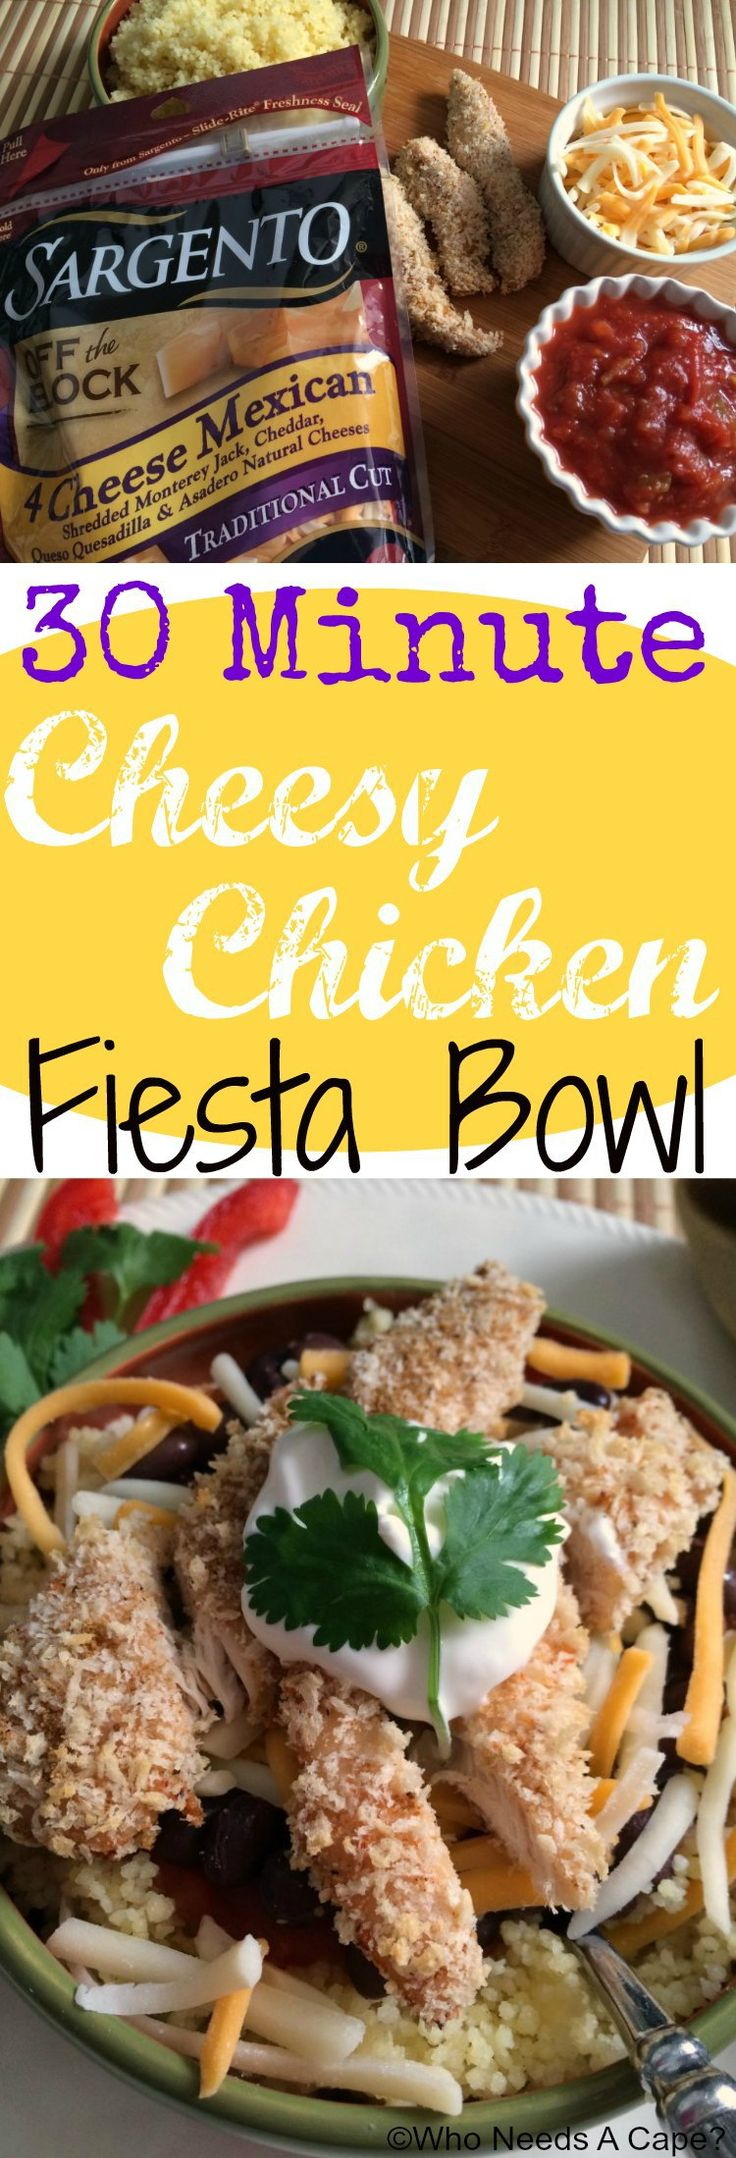 30 Minute Cheesy Chicken Fiesta Bowl | Who Needs A Cape?